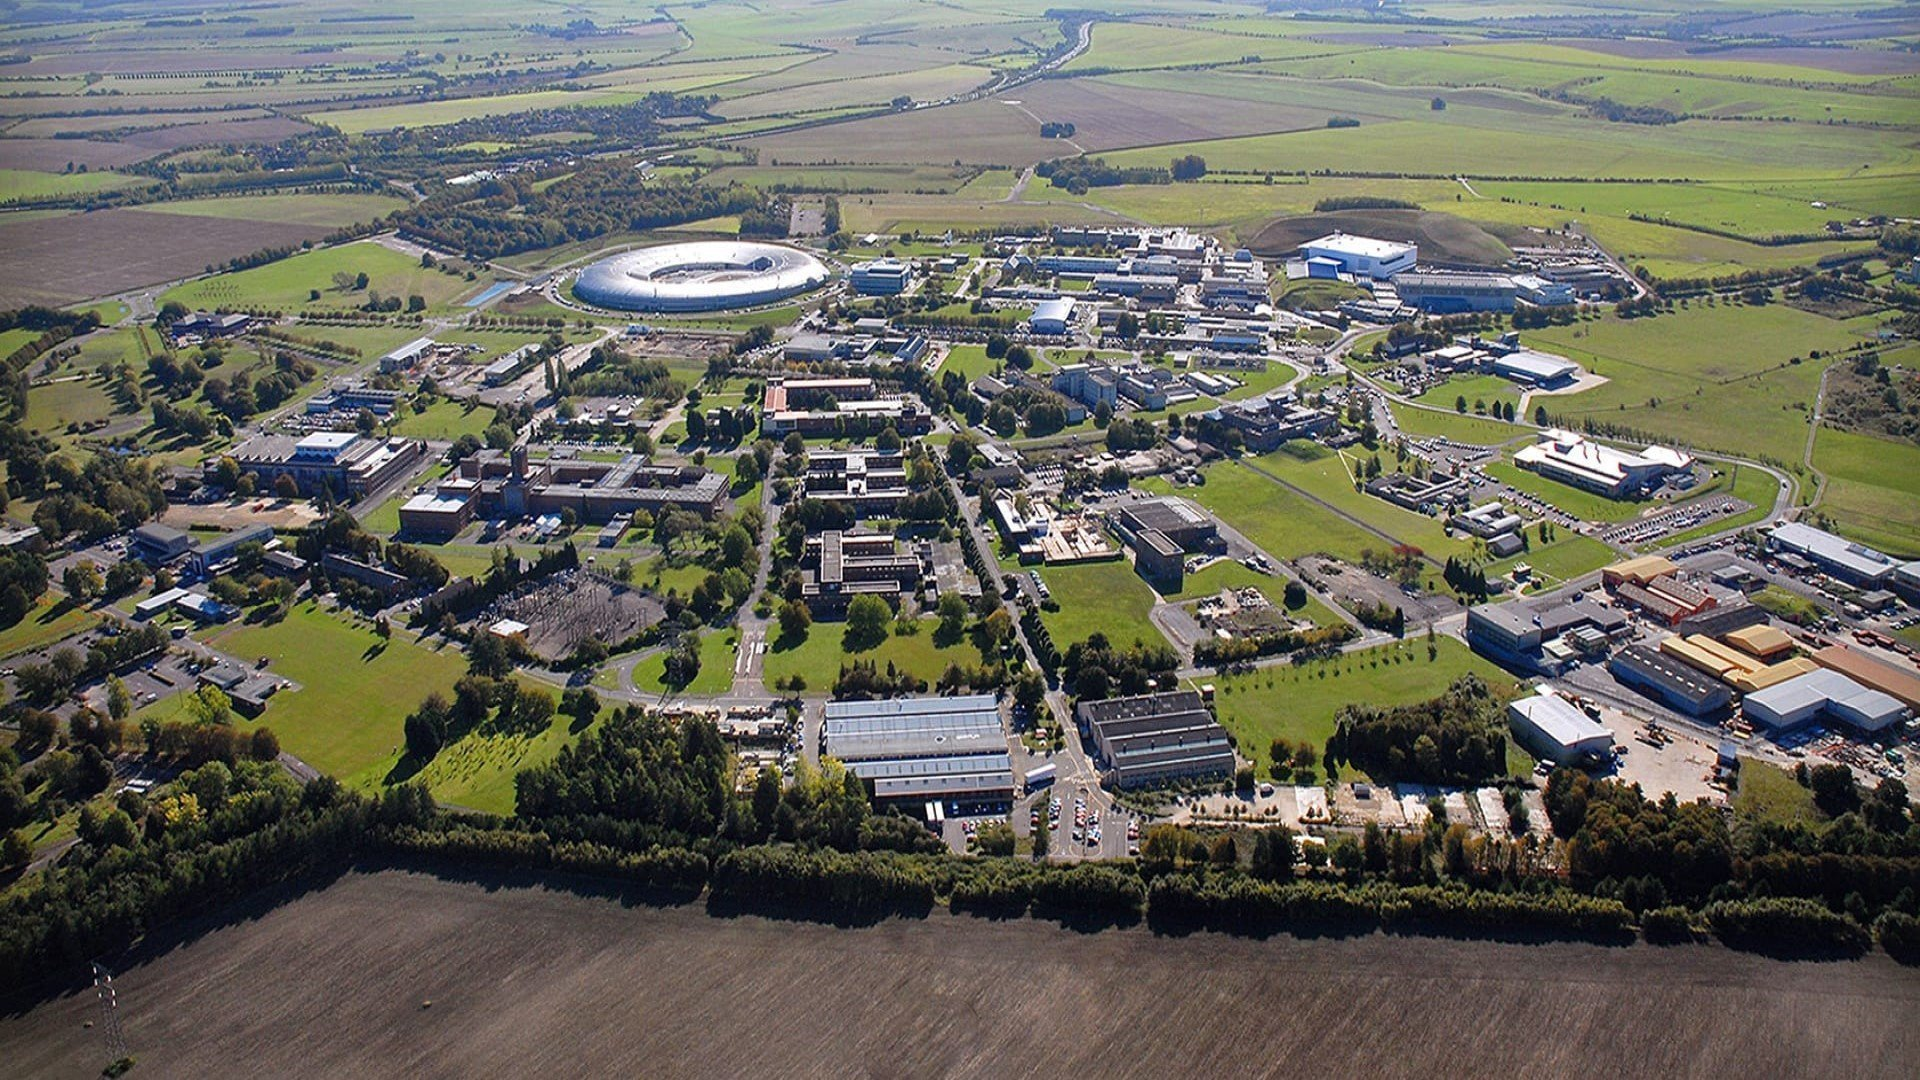 Aerial view of Harwell Campus in Oxfordshire